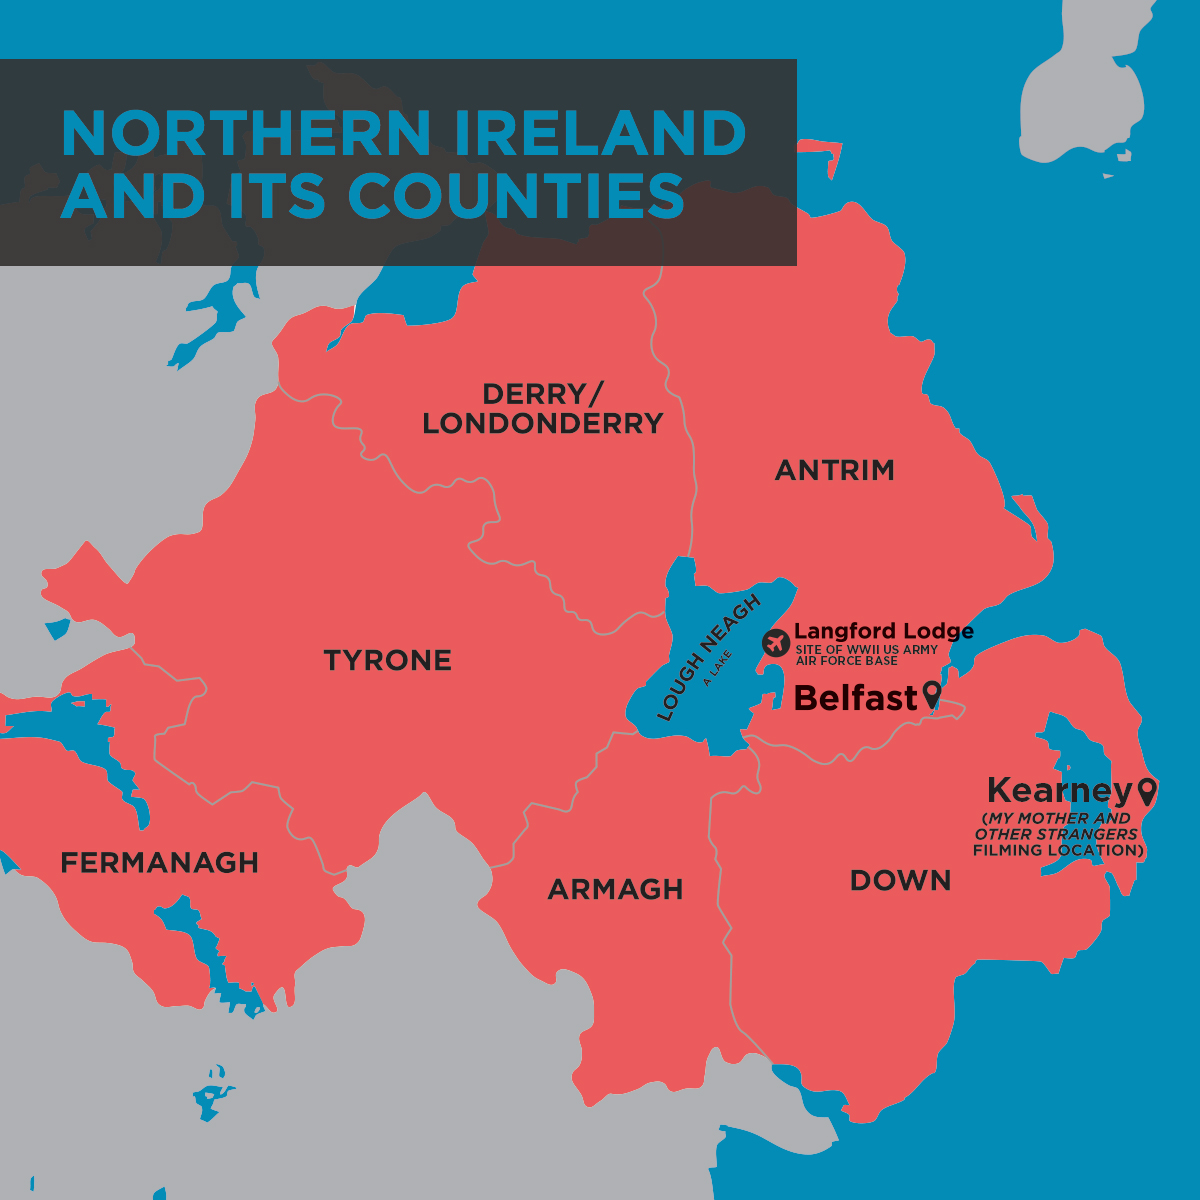 My mother and other strangers the pbs series explainer the republic of ireland became defacto independent from the united kingdom in 1921 and was neutral during world war ii in 1939 northern island gumiabroncs Images